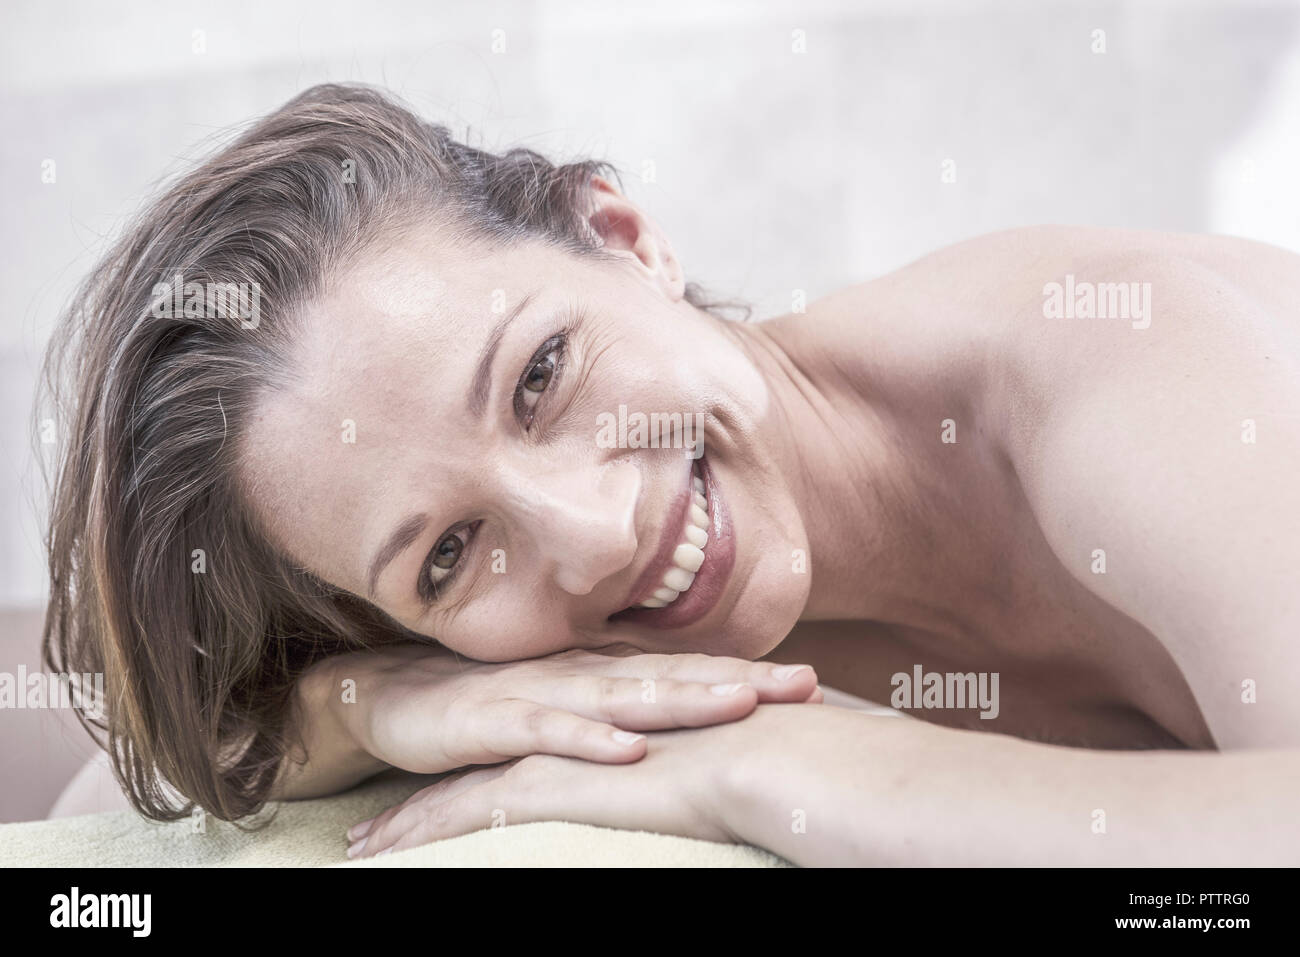 Dunkelhaarige Frau auf Massageliege, Portraet (model-released) Stock Photo